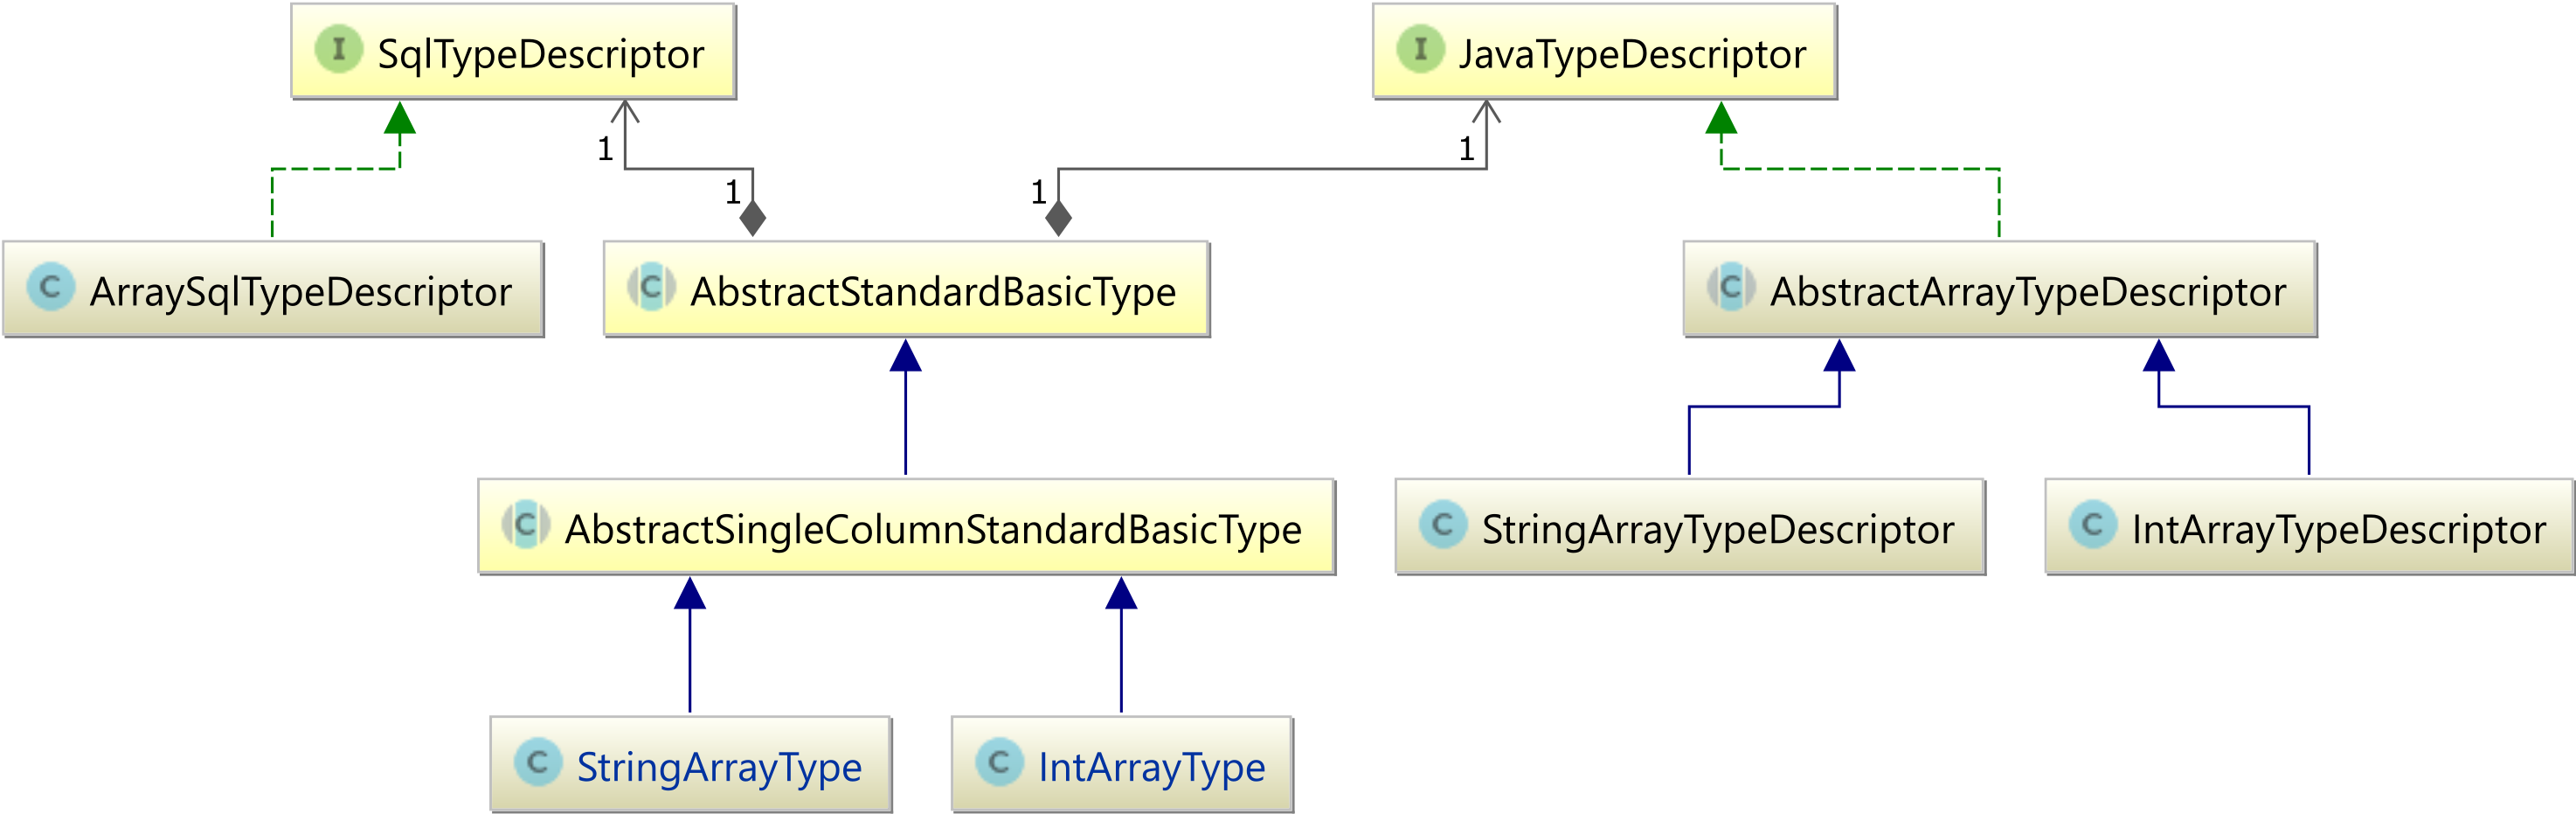 How To Map Java And Sql Arrays With Jpa Hibernate Vlad Mihalcea Logic Diagram Array Types Class